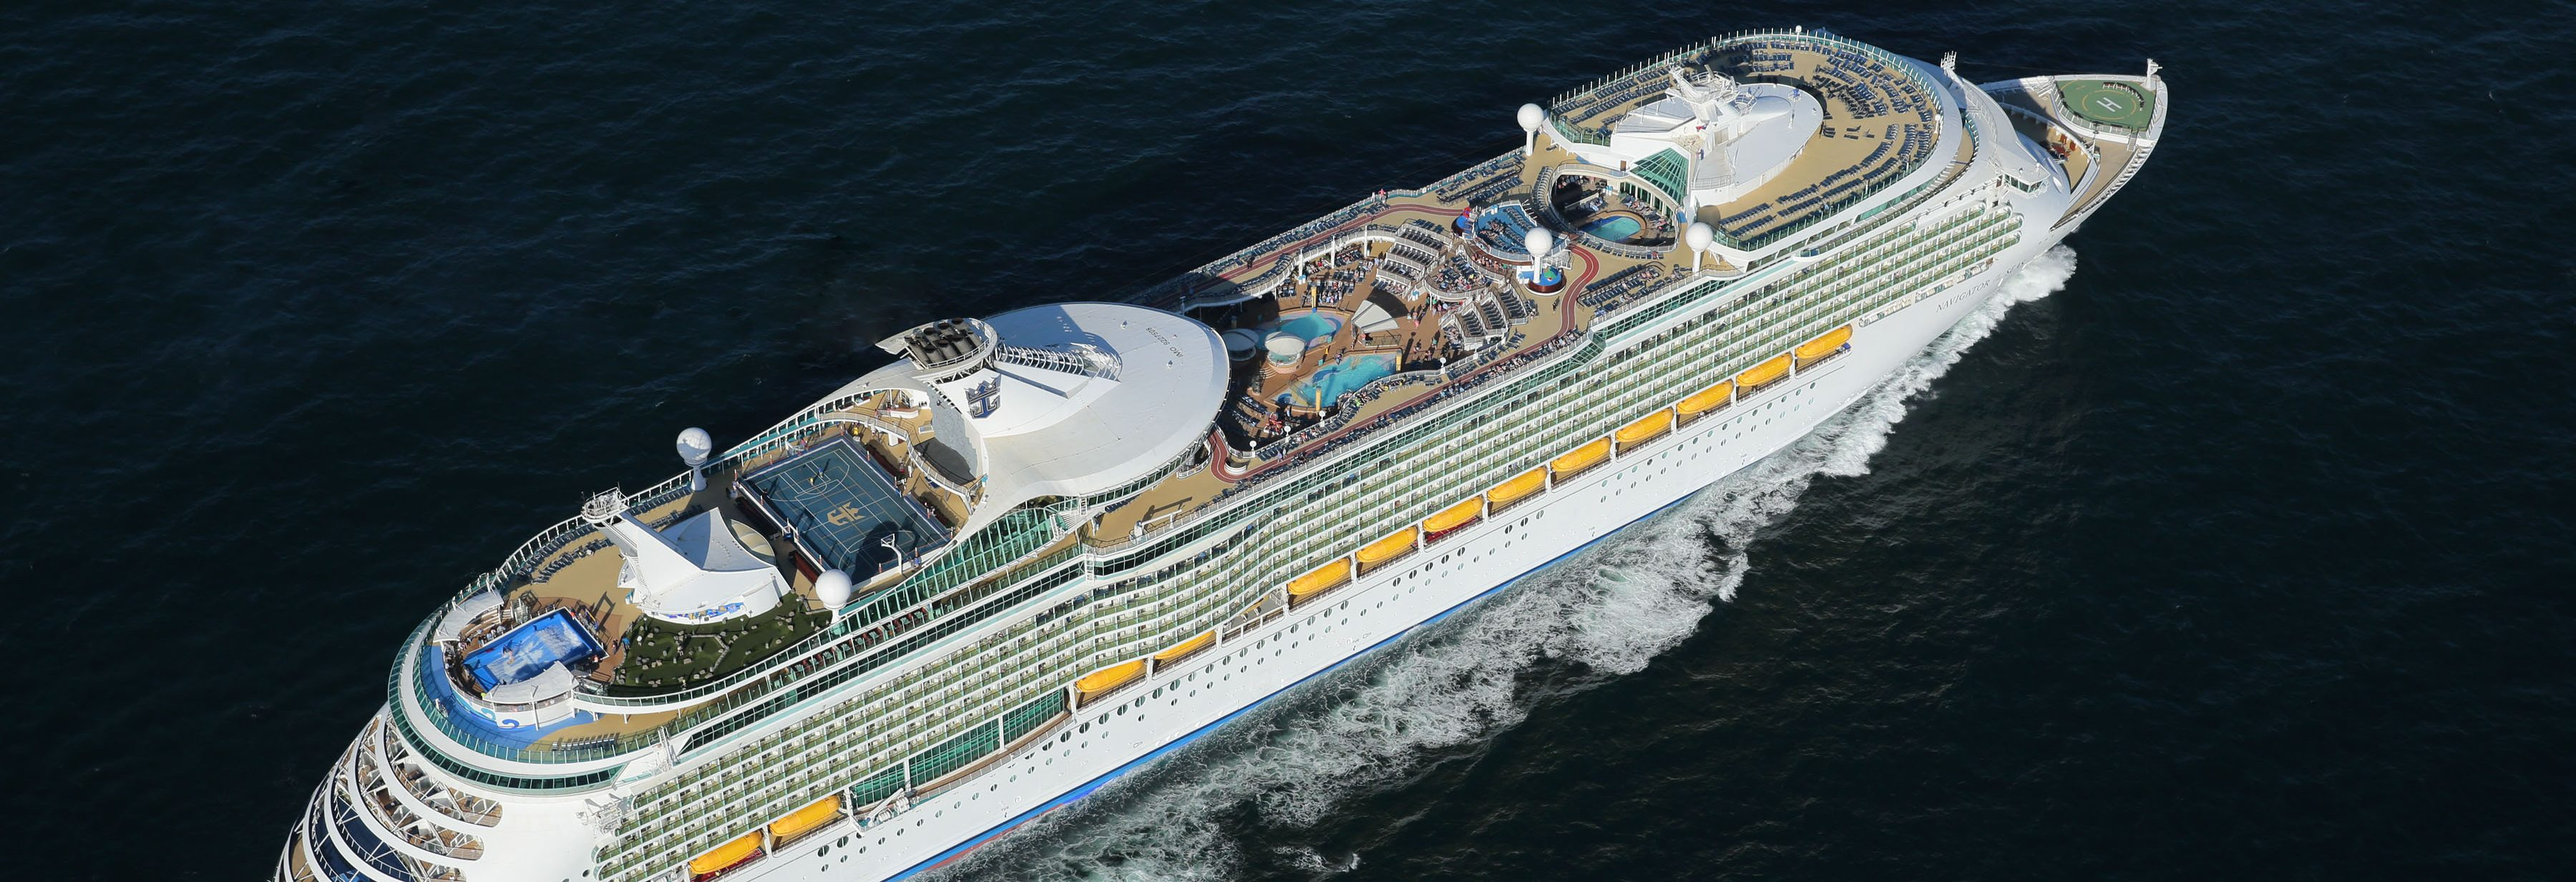 Most Popular Cruise Ships Of 2016  All About Cruise From